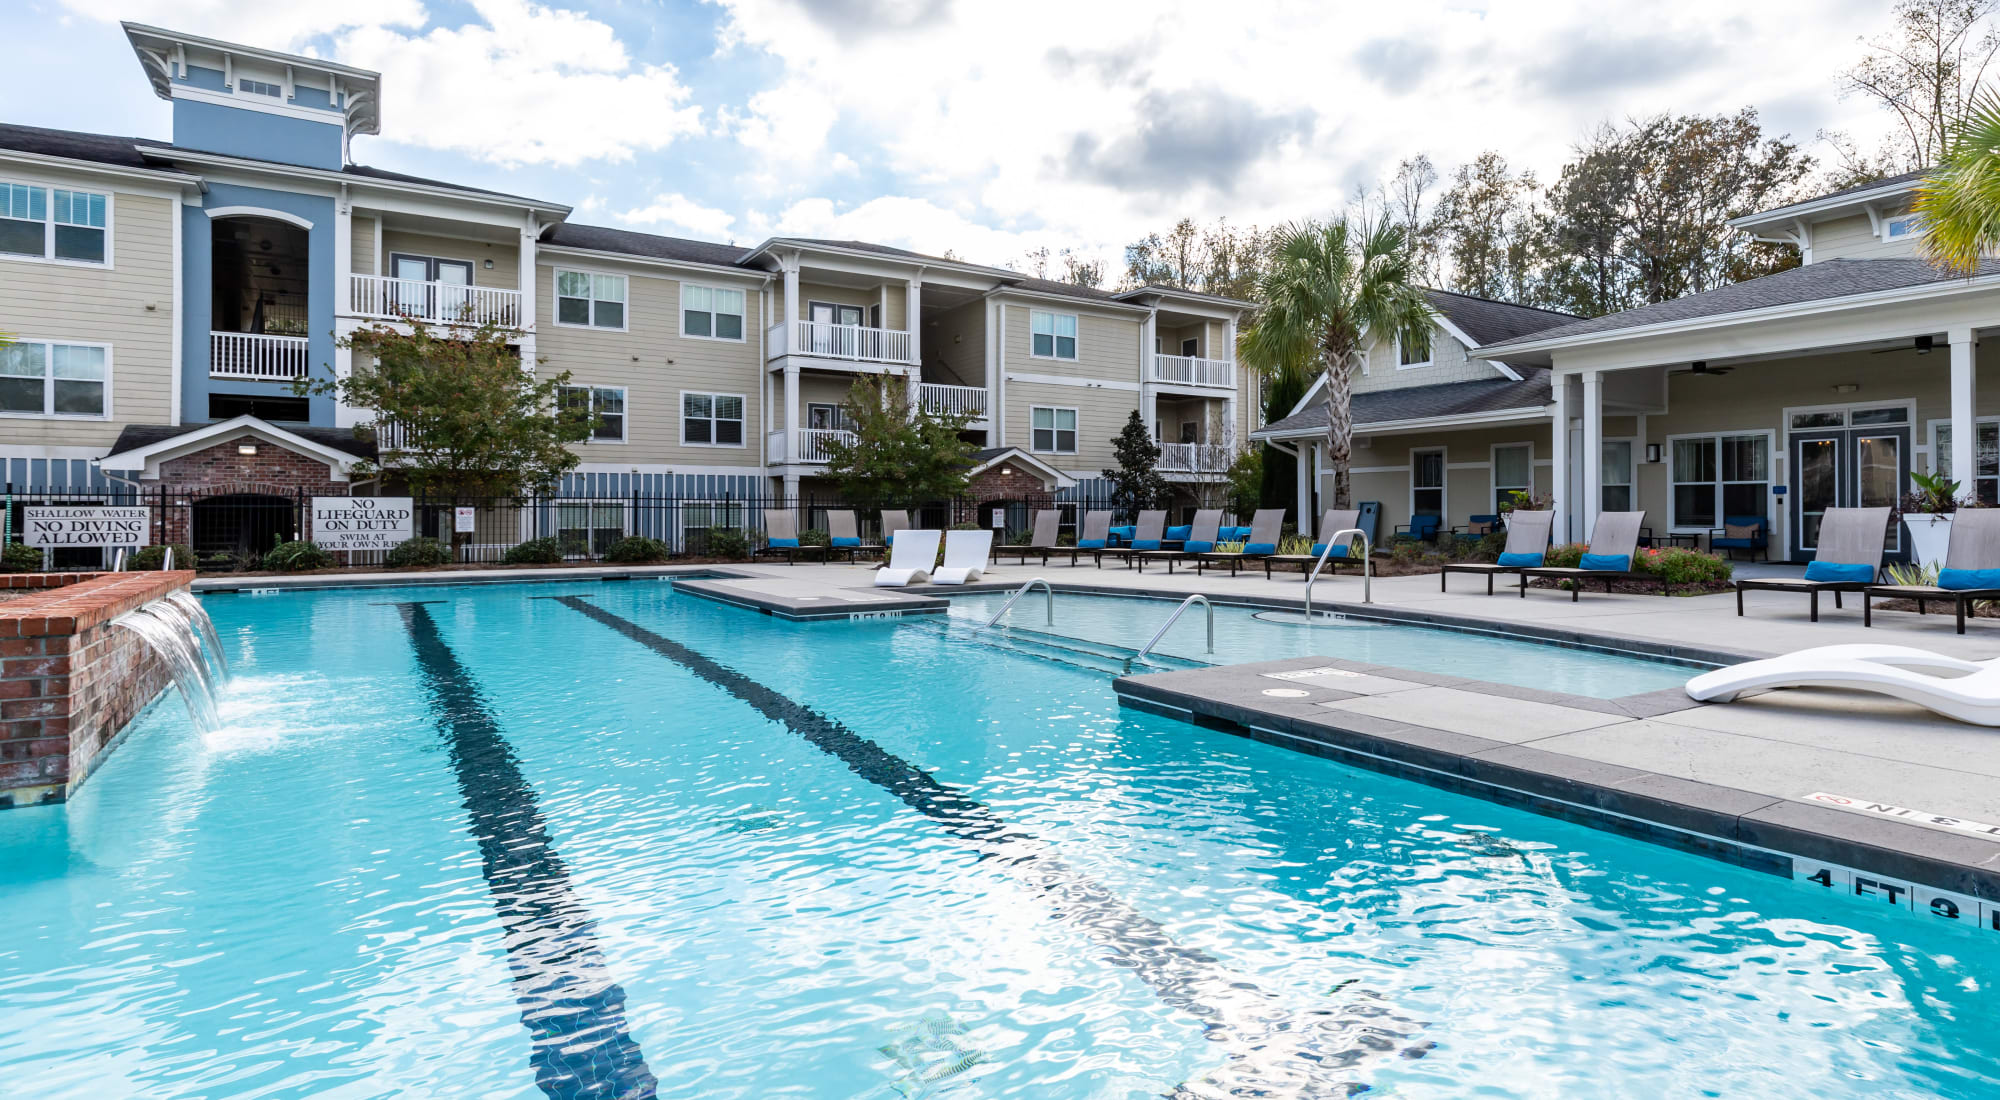 Pool at Ansley Commons Apartment Homes in Ladson, South Carolina